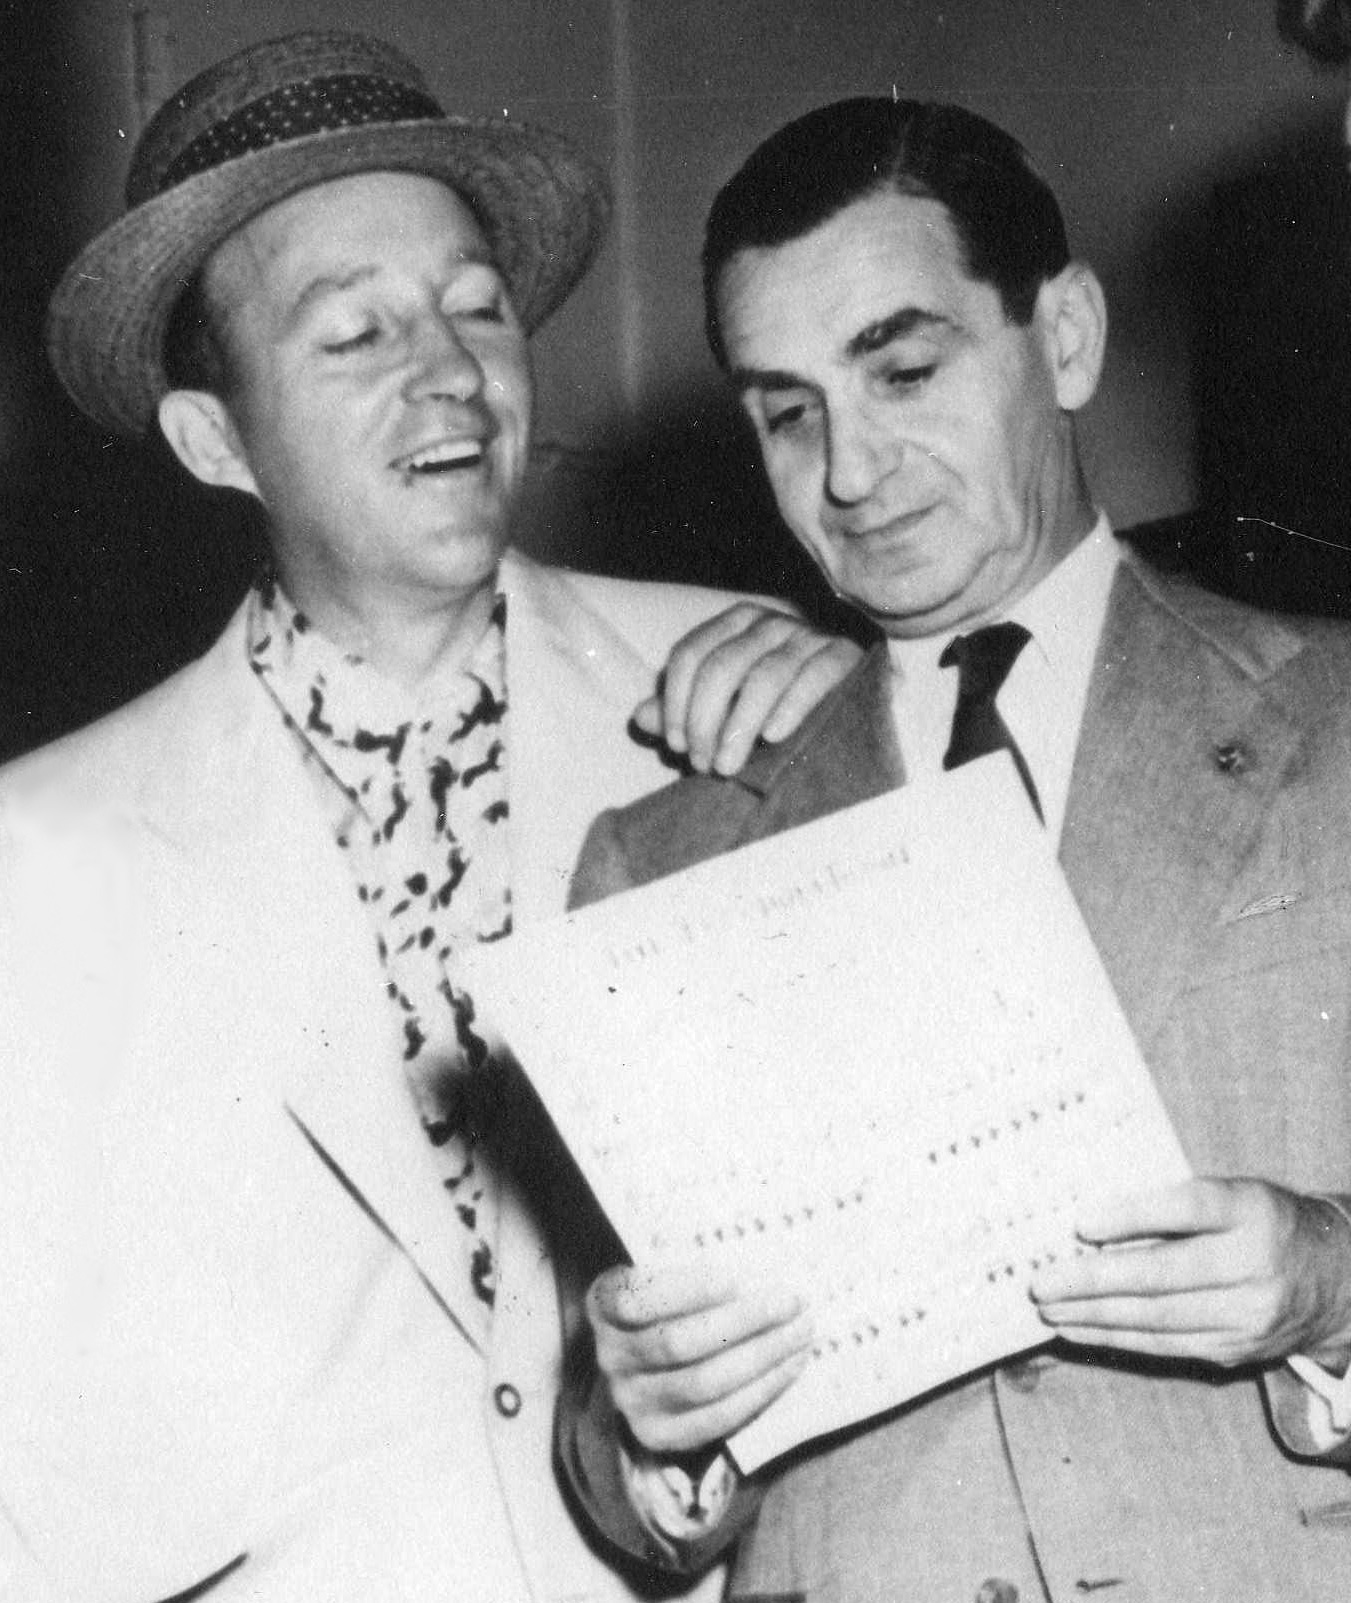 Irving Berlin with Bing Crosby